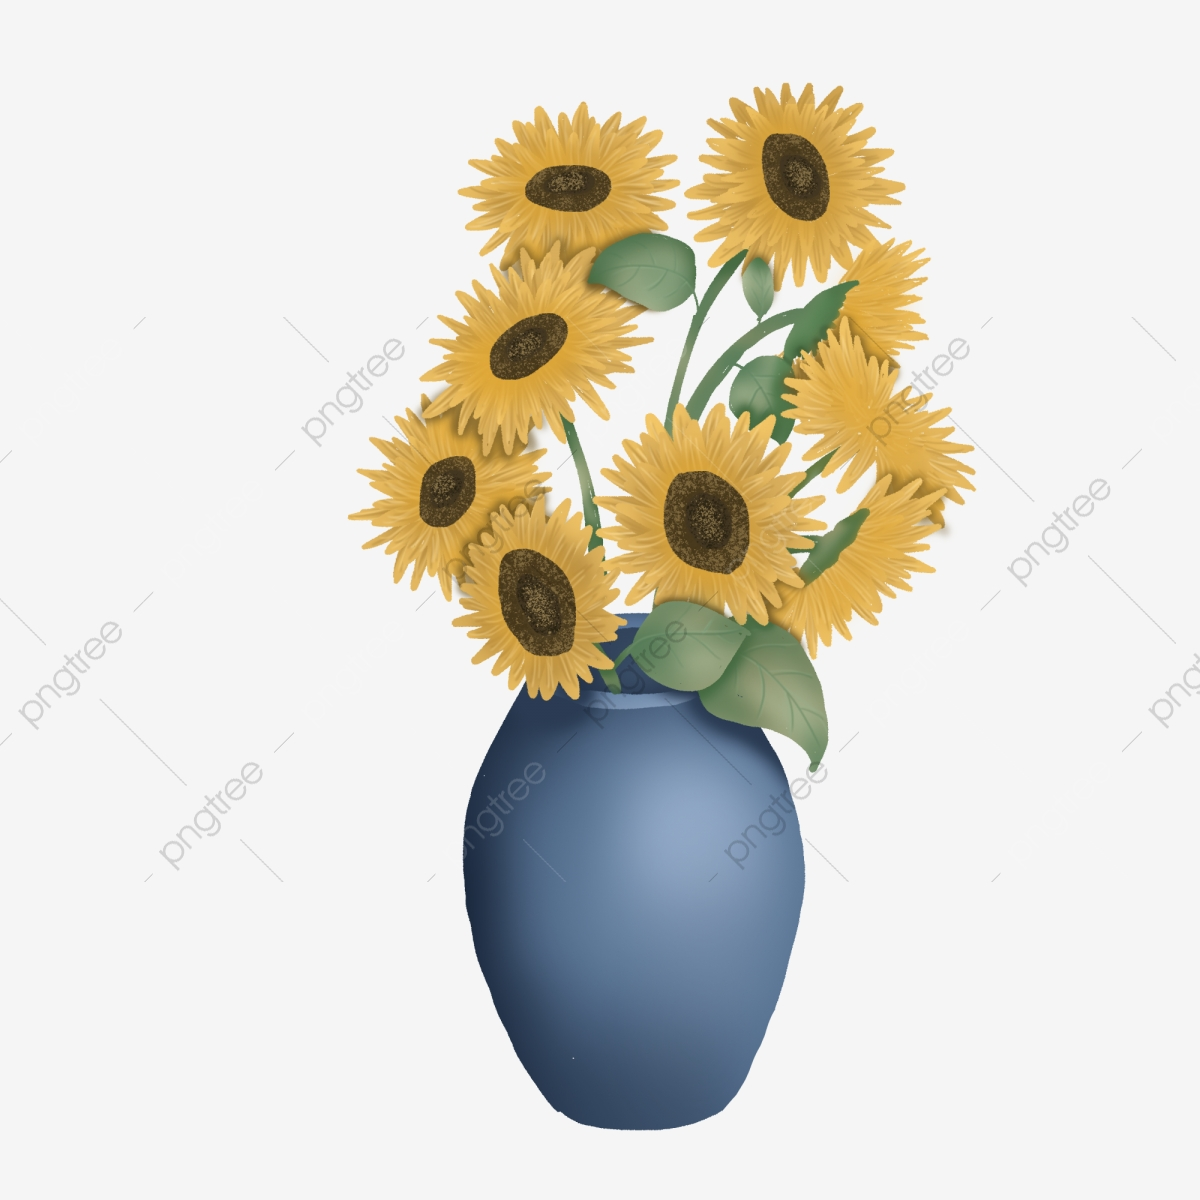 Sunflower Cartoon Hand Drawn Design In Vase Commercial